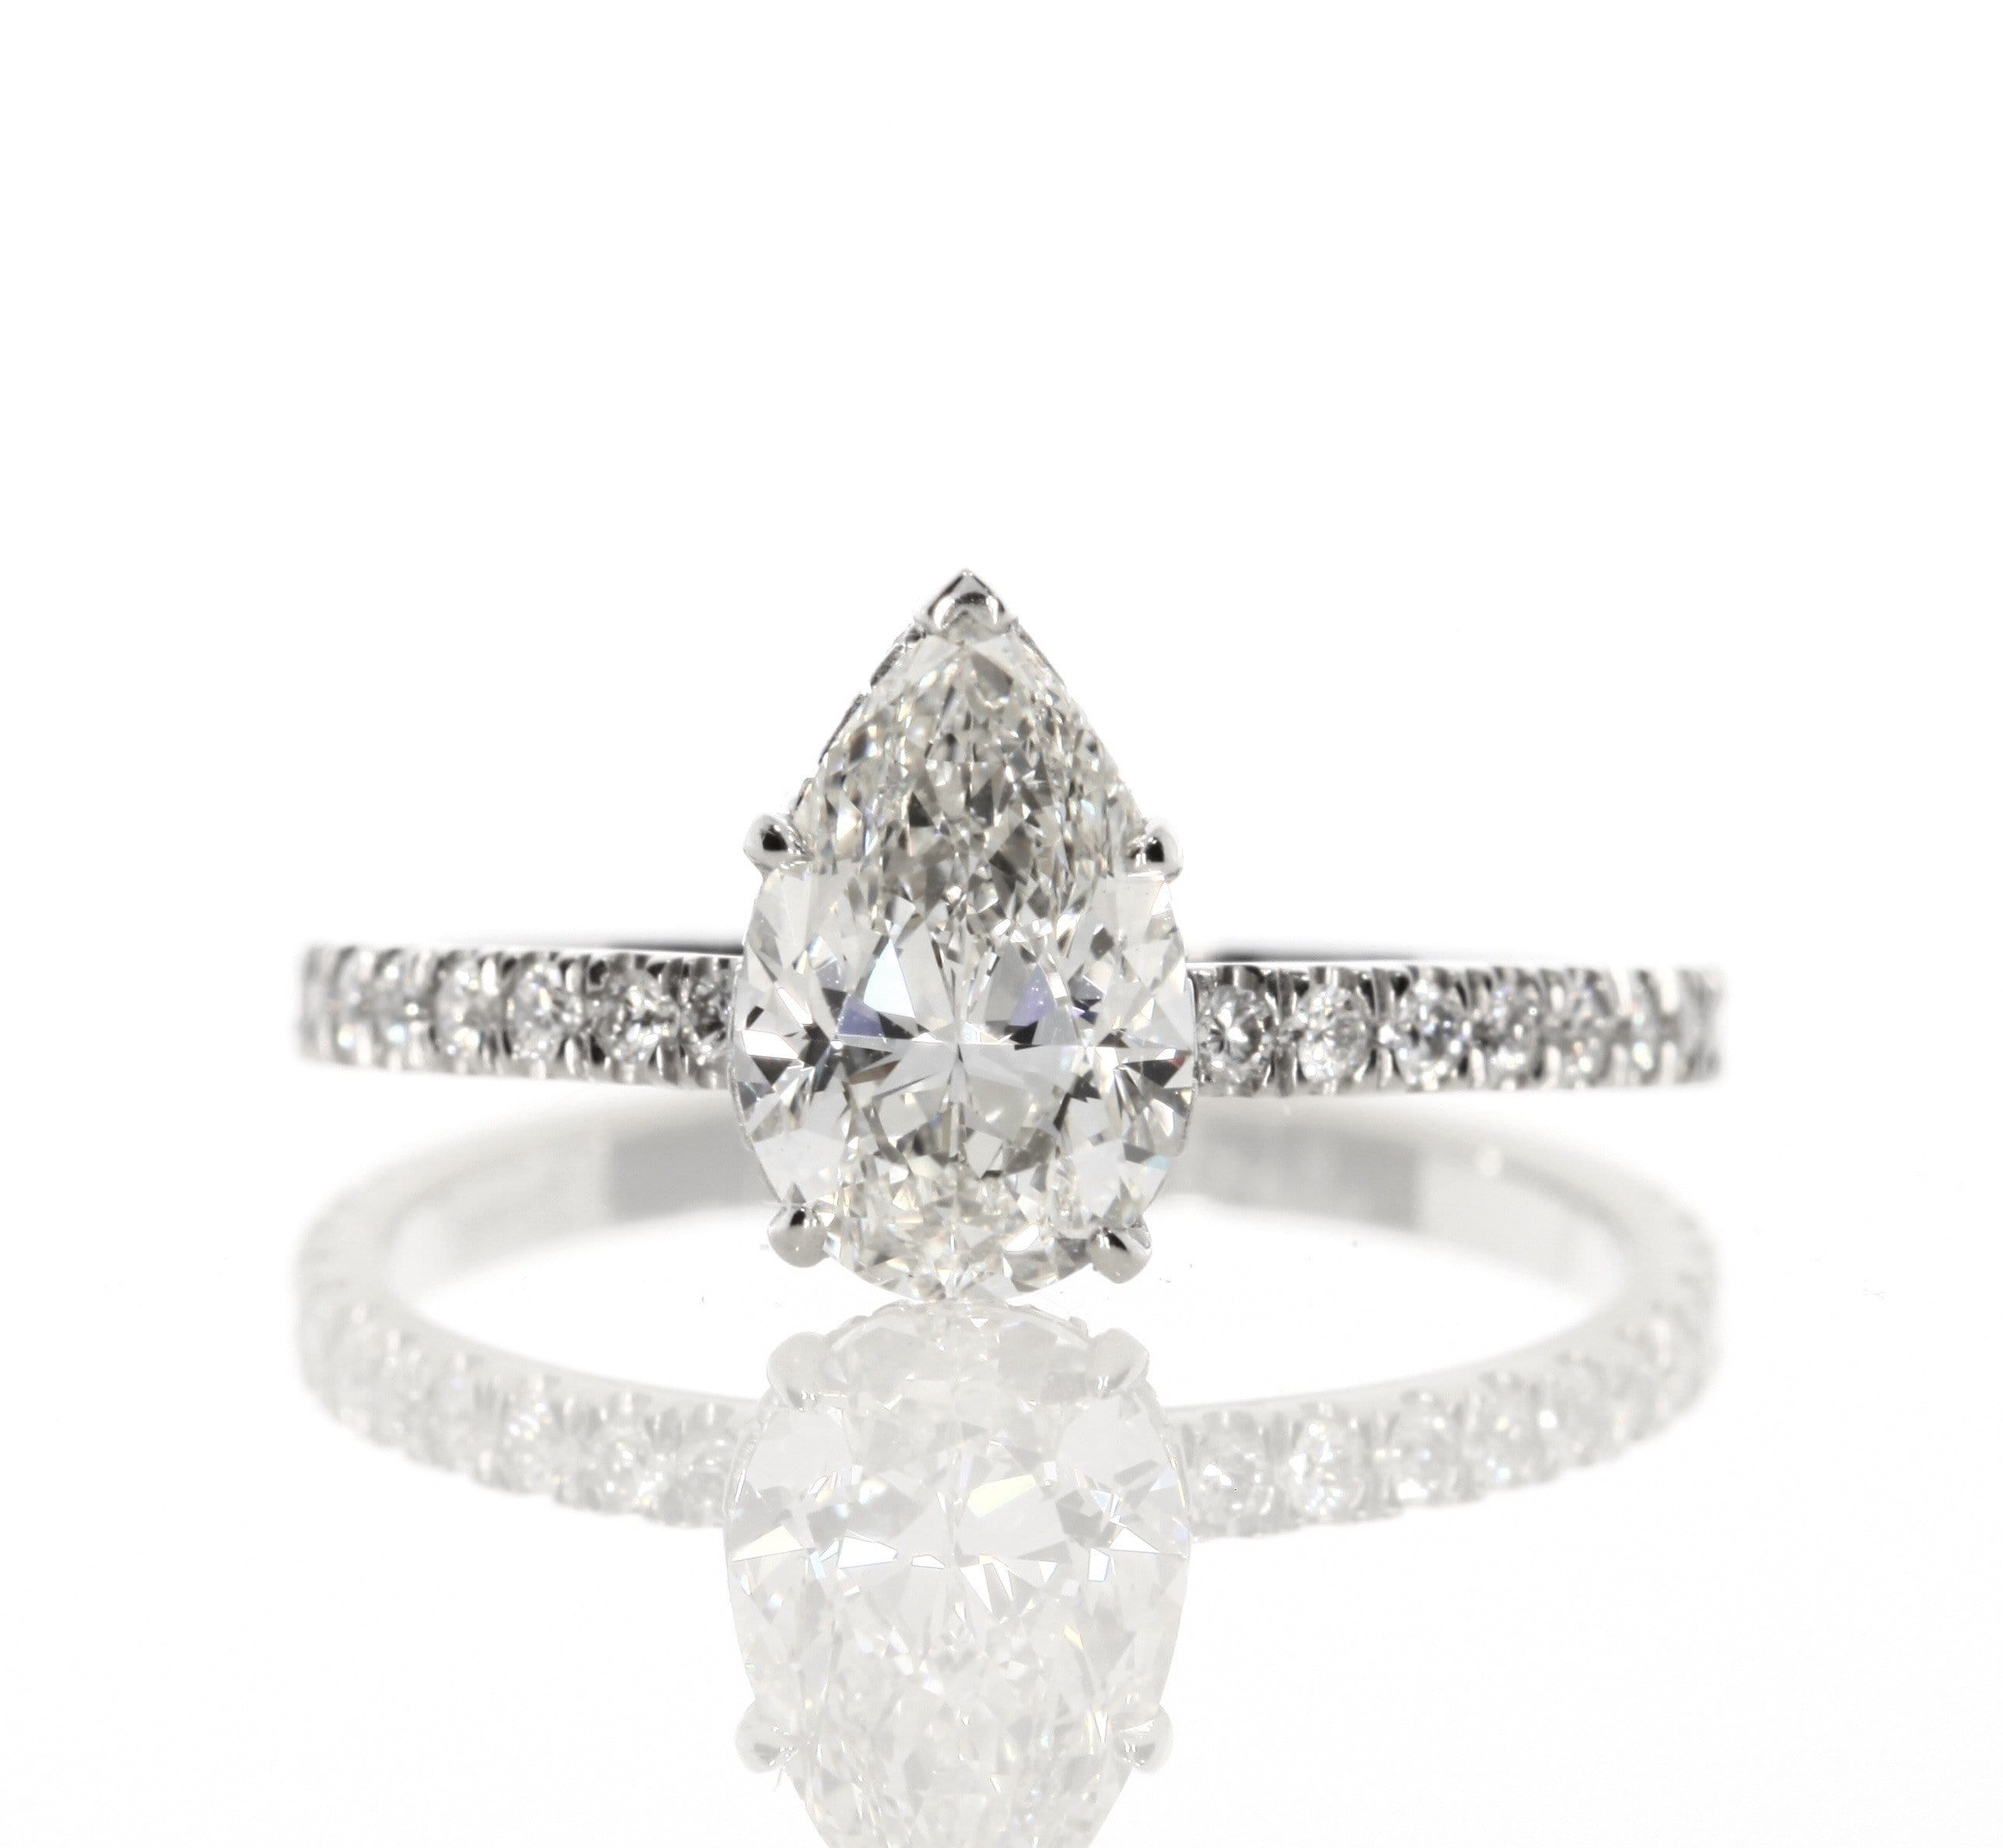 be oval ring shaped wedding diamond gallery engaged is adrienne by inspired her bailon large